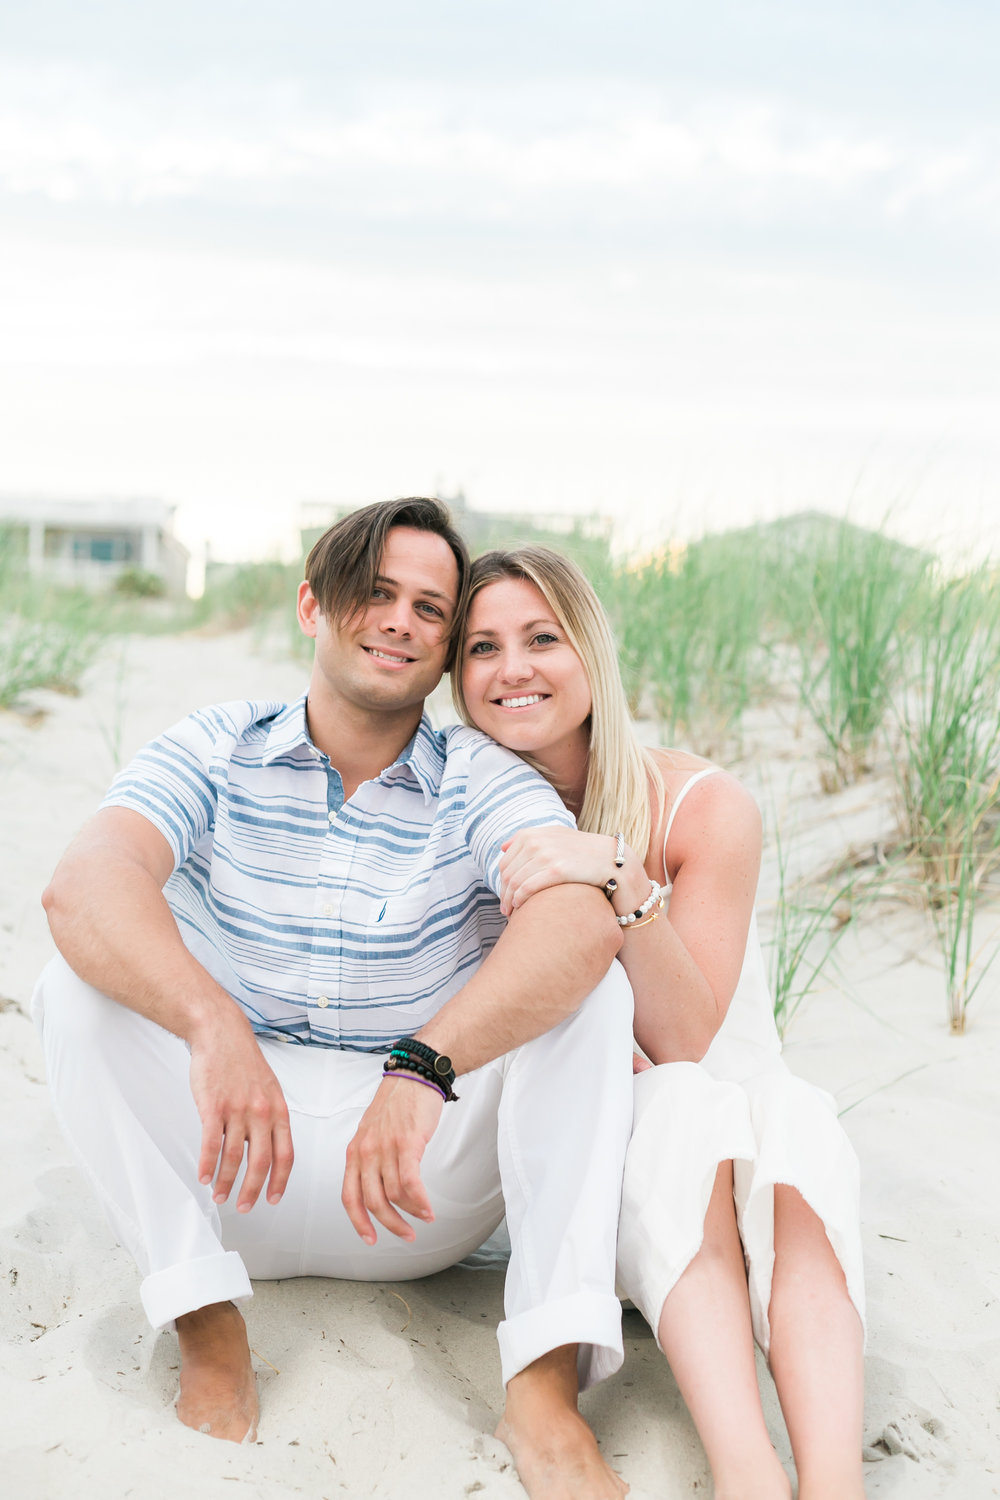 Magdalena Studios - Beach Family Photographer in Ocean City New Jersey NJ7.jpg